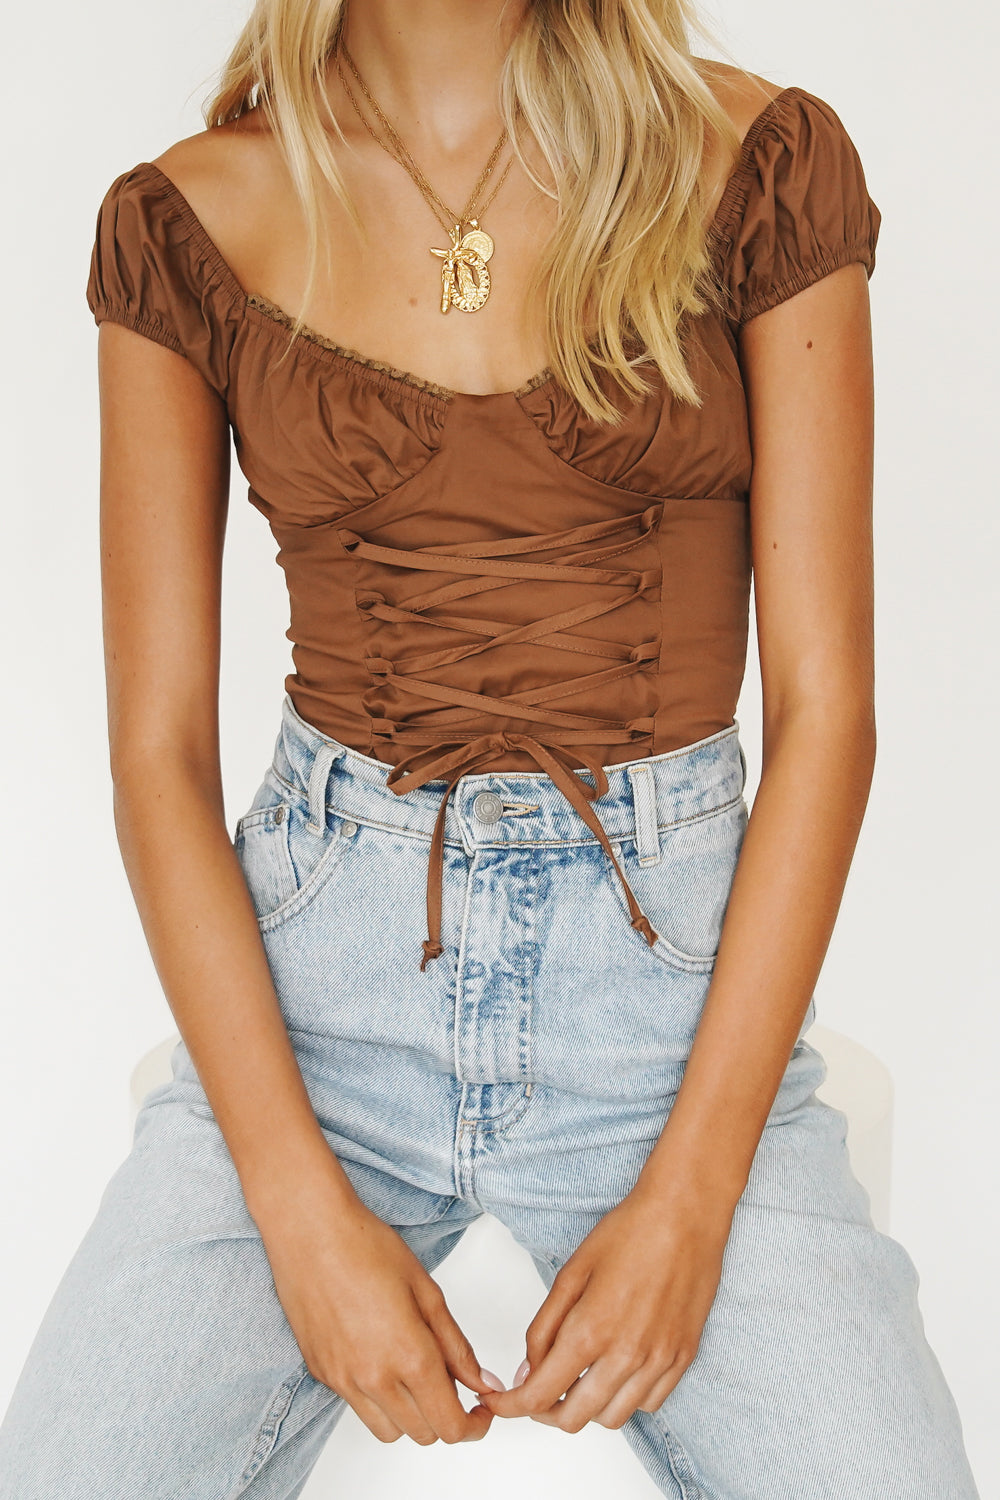 Books & Wine Lace Up Top // Brown